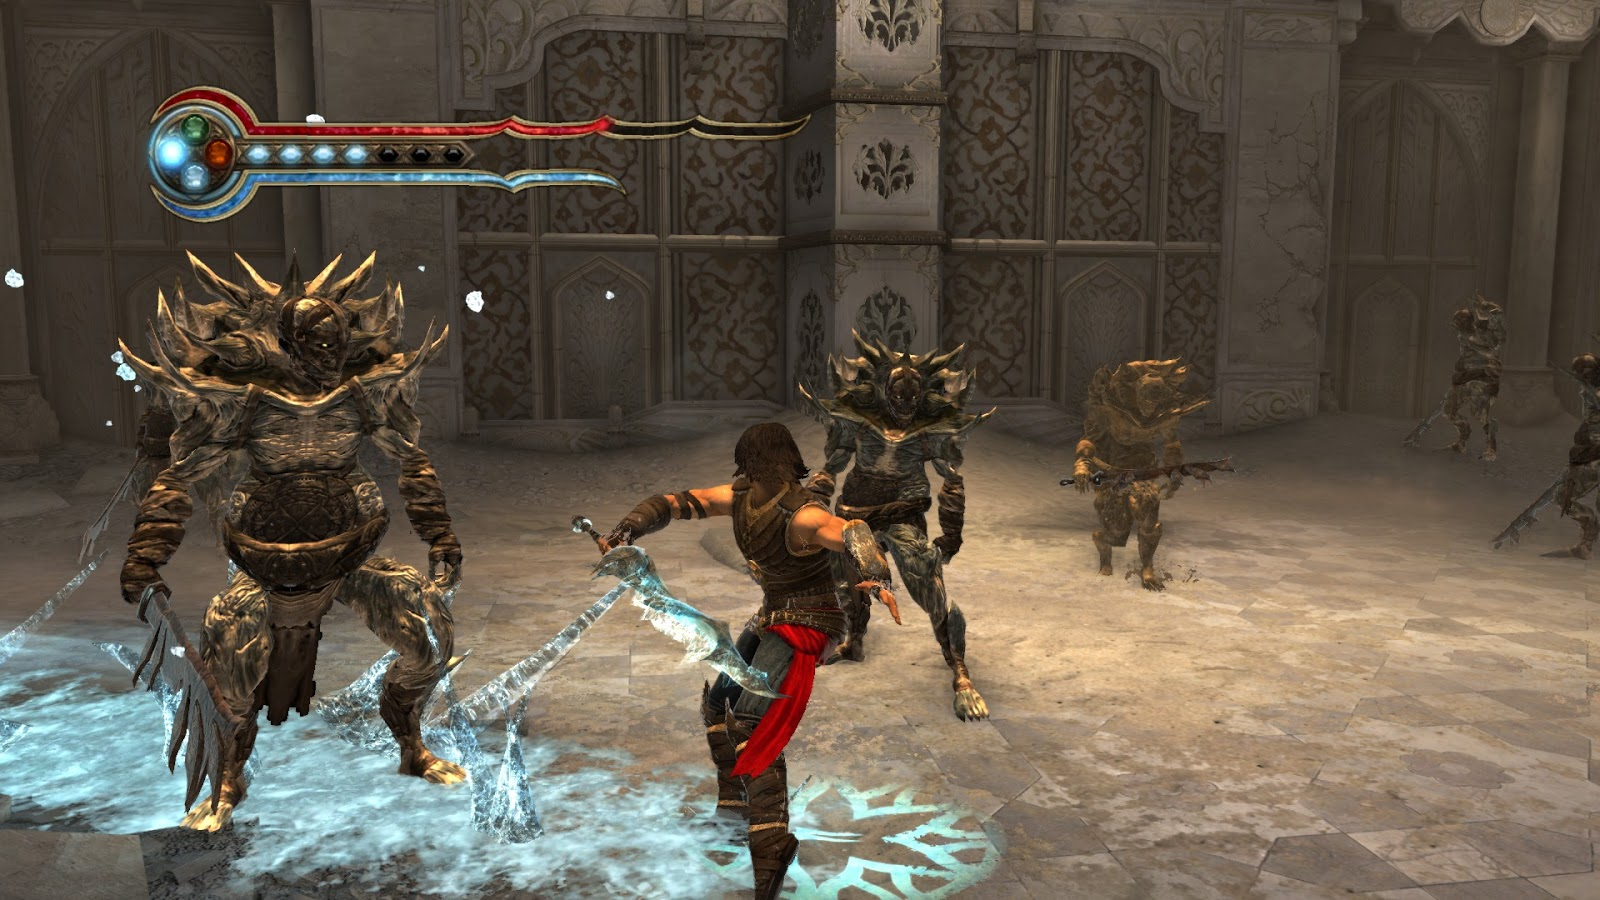 Buy prince of persia: the forgotten sands [uplay account] and download.